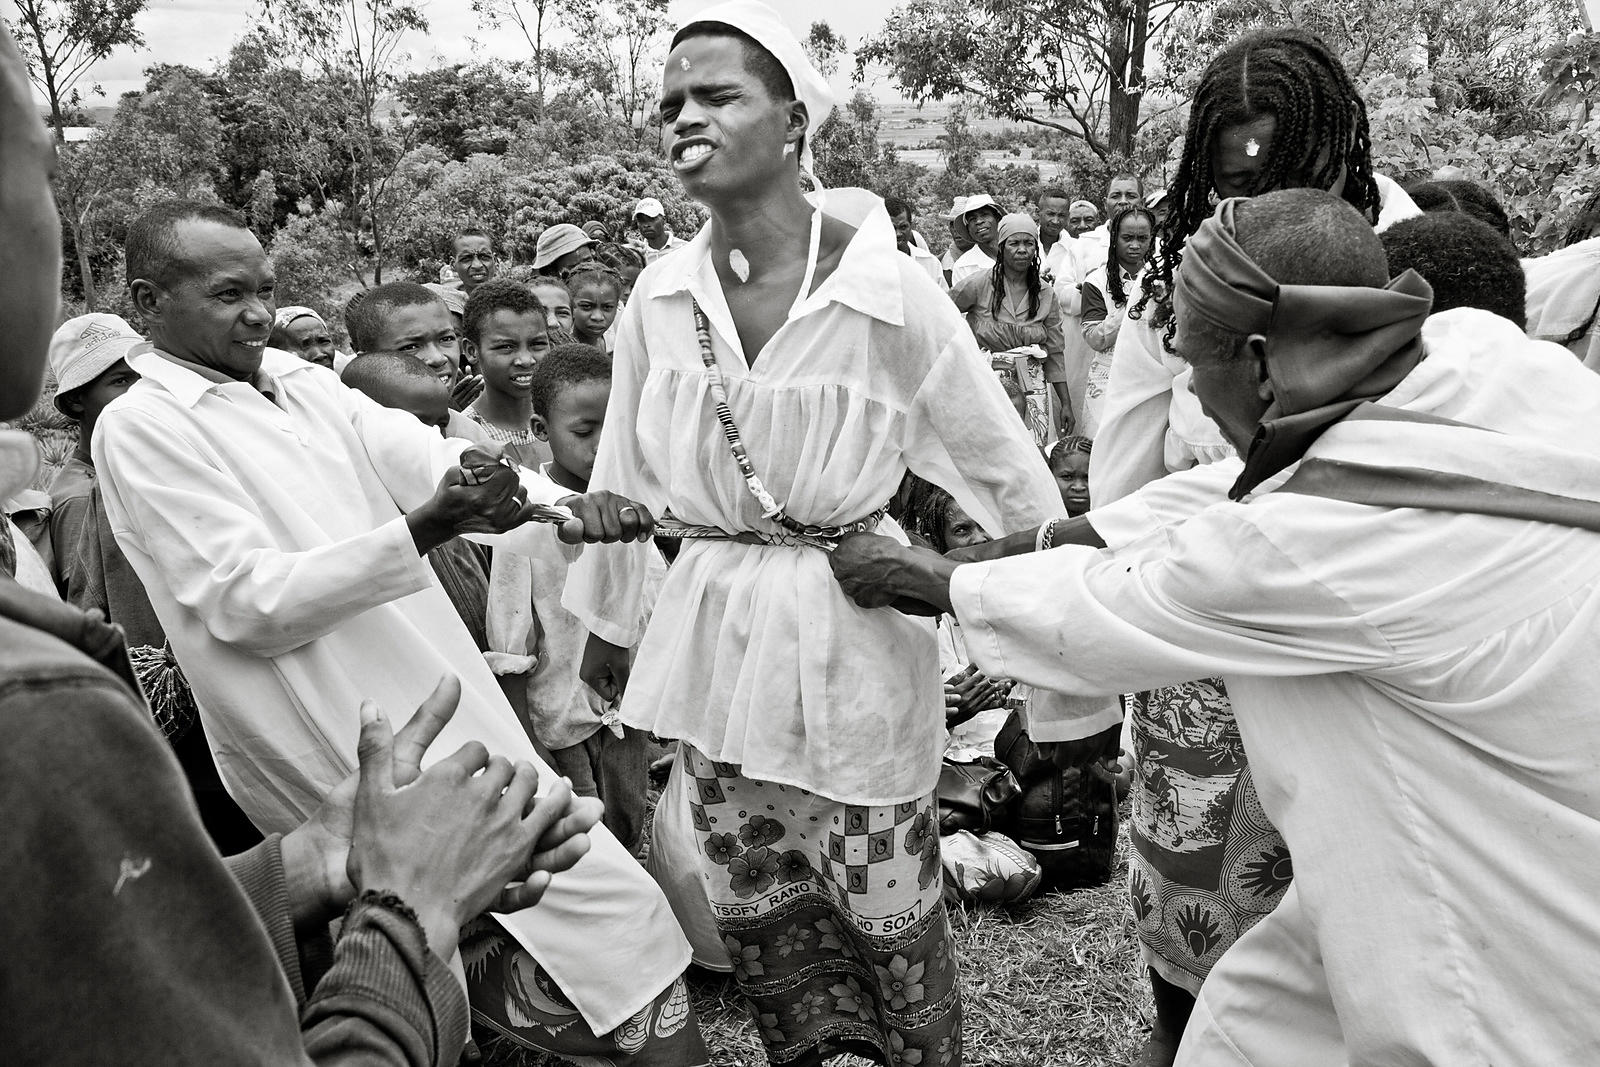 "MANGALAZA COMMUNE - ""Mpanazary"" in the middle of a trans session. They are members of the ANTALAOTRA association, the largest cultural association in this part of Madagascar, whose mission is to promote and make known the rites, cults and traditions of the Alaotra Mangoro region, a sacred region according. Created in 2014, the association already has 37,000 members. Most of them are Mpanazary that can be translated as spiritual guide, diviner, medium. The literal translation is ""bewitching"". The Mpanazary are almost considered as "" demi-gods "". Their dreams, predictions and premonitions are respected and followed by the people of the region and even by the civil and administrative authorities. The region around Lake Alaotra (North-East of Madagascar) is one of the richest agricultural regions in Madagascar. It is considered the ""rice granary"" of the Big Island. Some argue without hesitation that it is because of the sacred character of the region and its particular cultural practices that the region is so prosperous. Today, as every year, the local population and some Mpanazary go to a sacred hill near the village of Mangalaza to invoke the spirits of the ancestors (Tromba) and ask Zanahary (animist Malagasy God) and Andriamanitra (Christian God) to kindly bring again the beneficial rains for next October that will grow the crops. Each Mpanazary has its specialty: some can bring rain, some can stop cyclones, others can drive out evil spirits. The patients take the opportunity to be treated by the Mpanazary-healer. ."